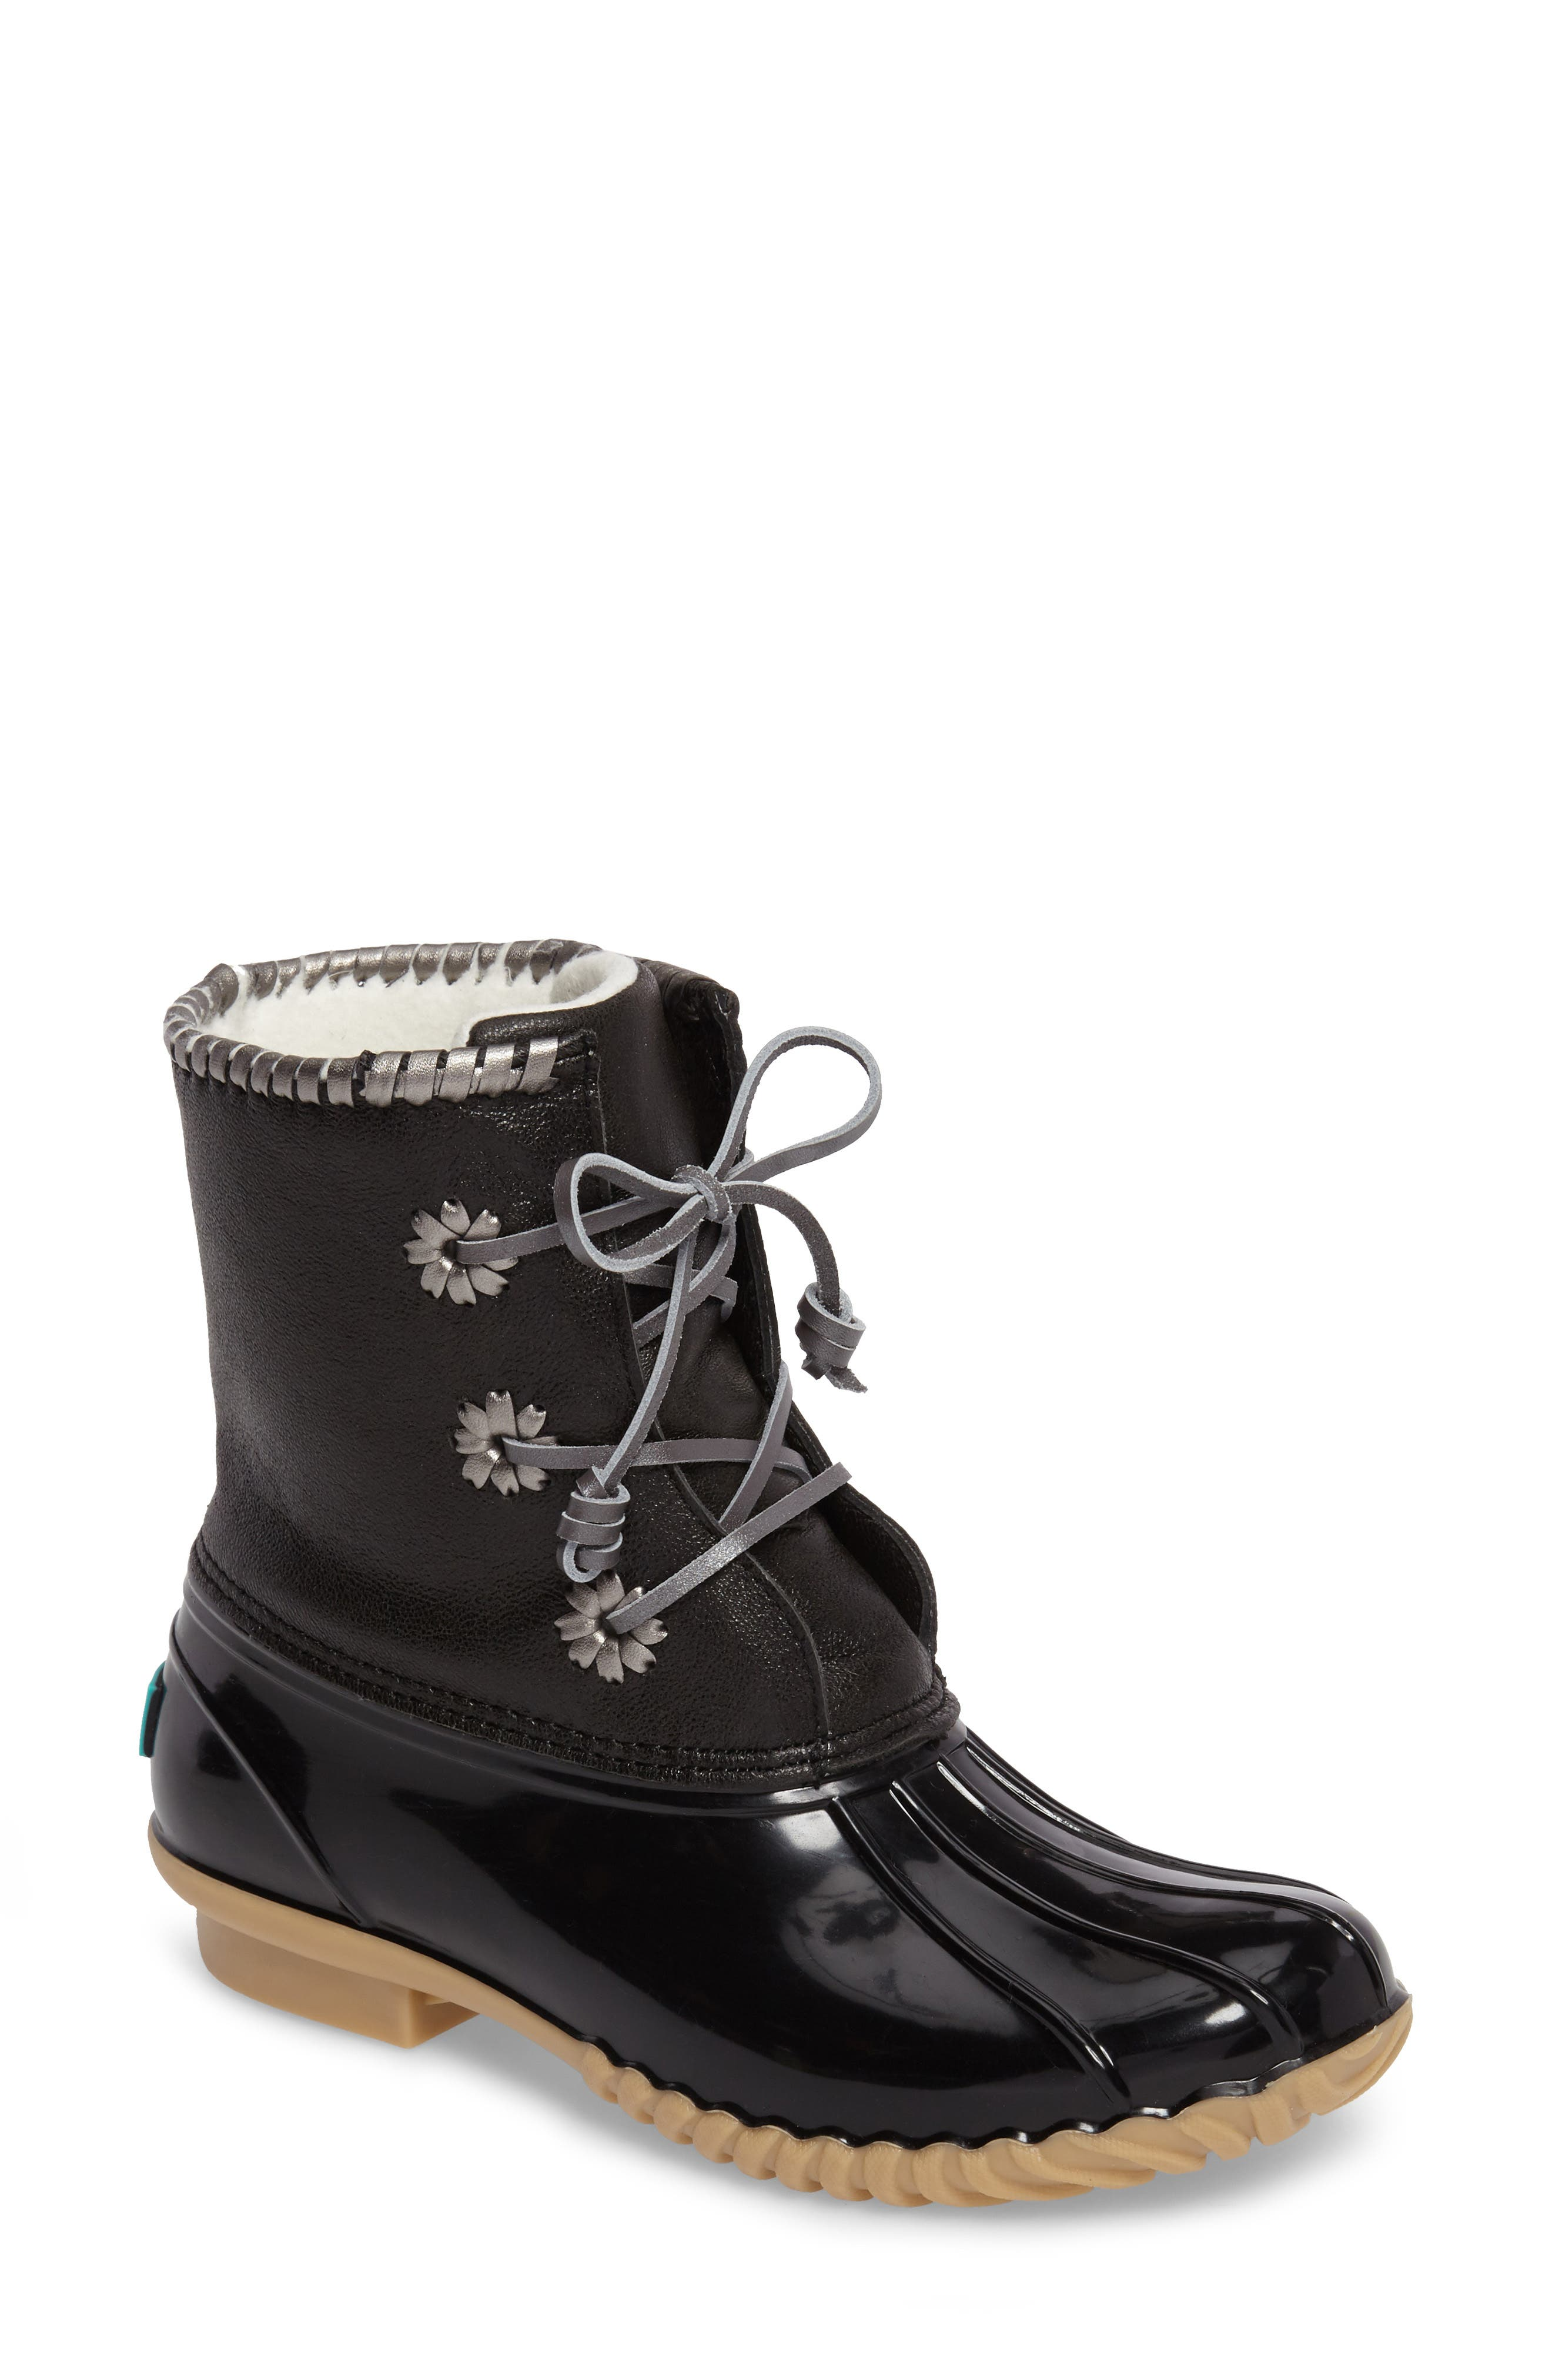 'Chloe' Rain Boot,                             Main thumbnail 1, color,                             003